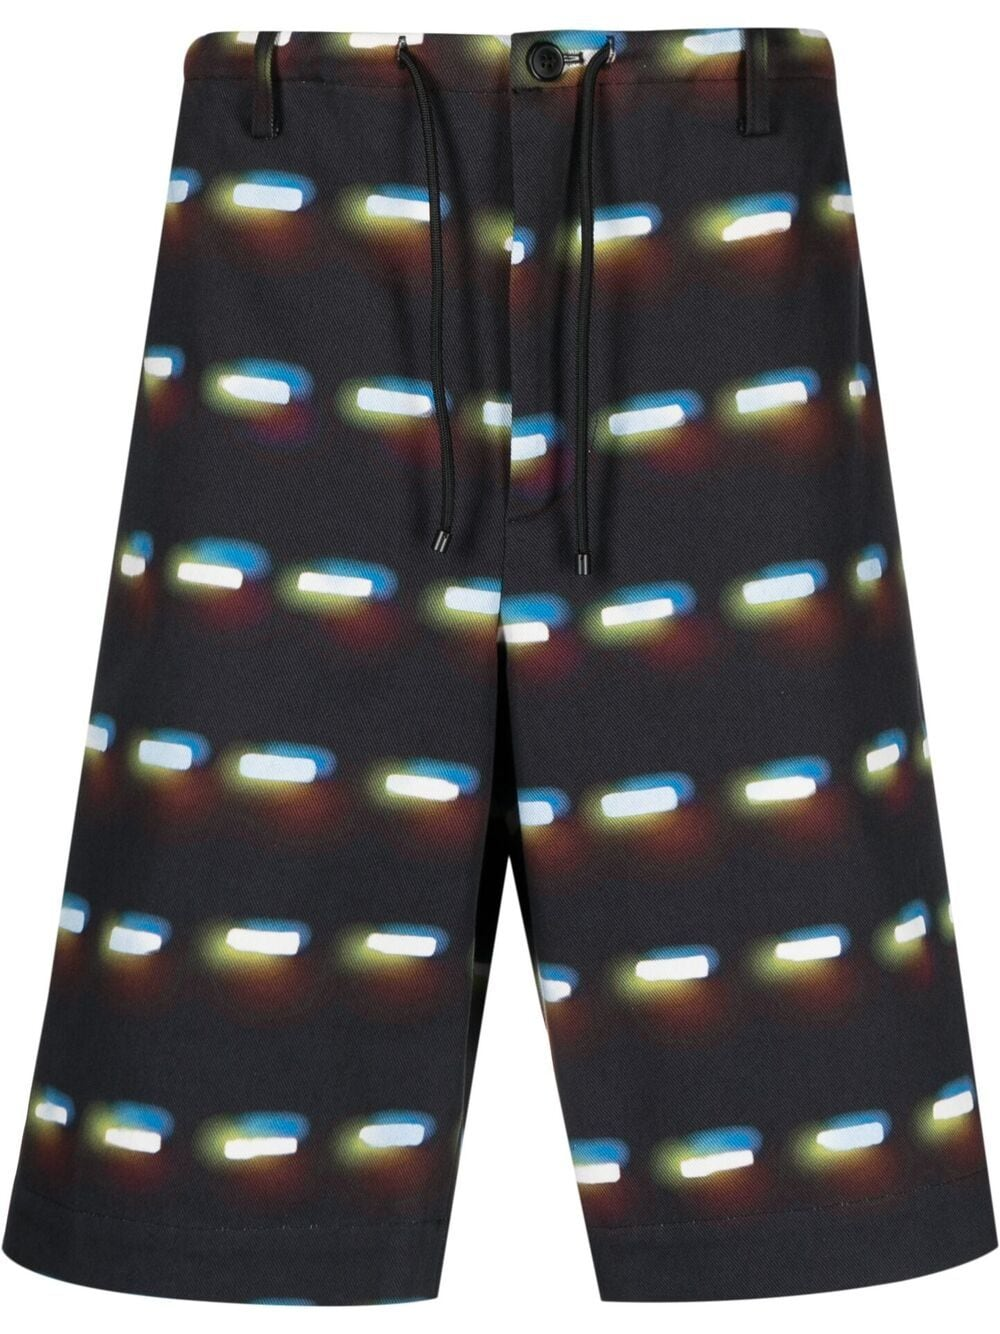 Dries Van Noten print shorts man black DRIES VAN NOTEN | Shorts | PENNY2024BLACK